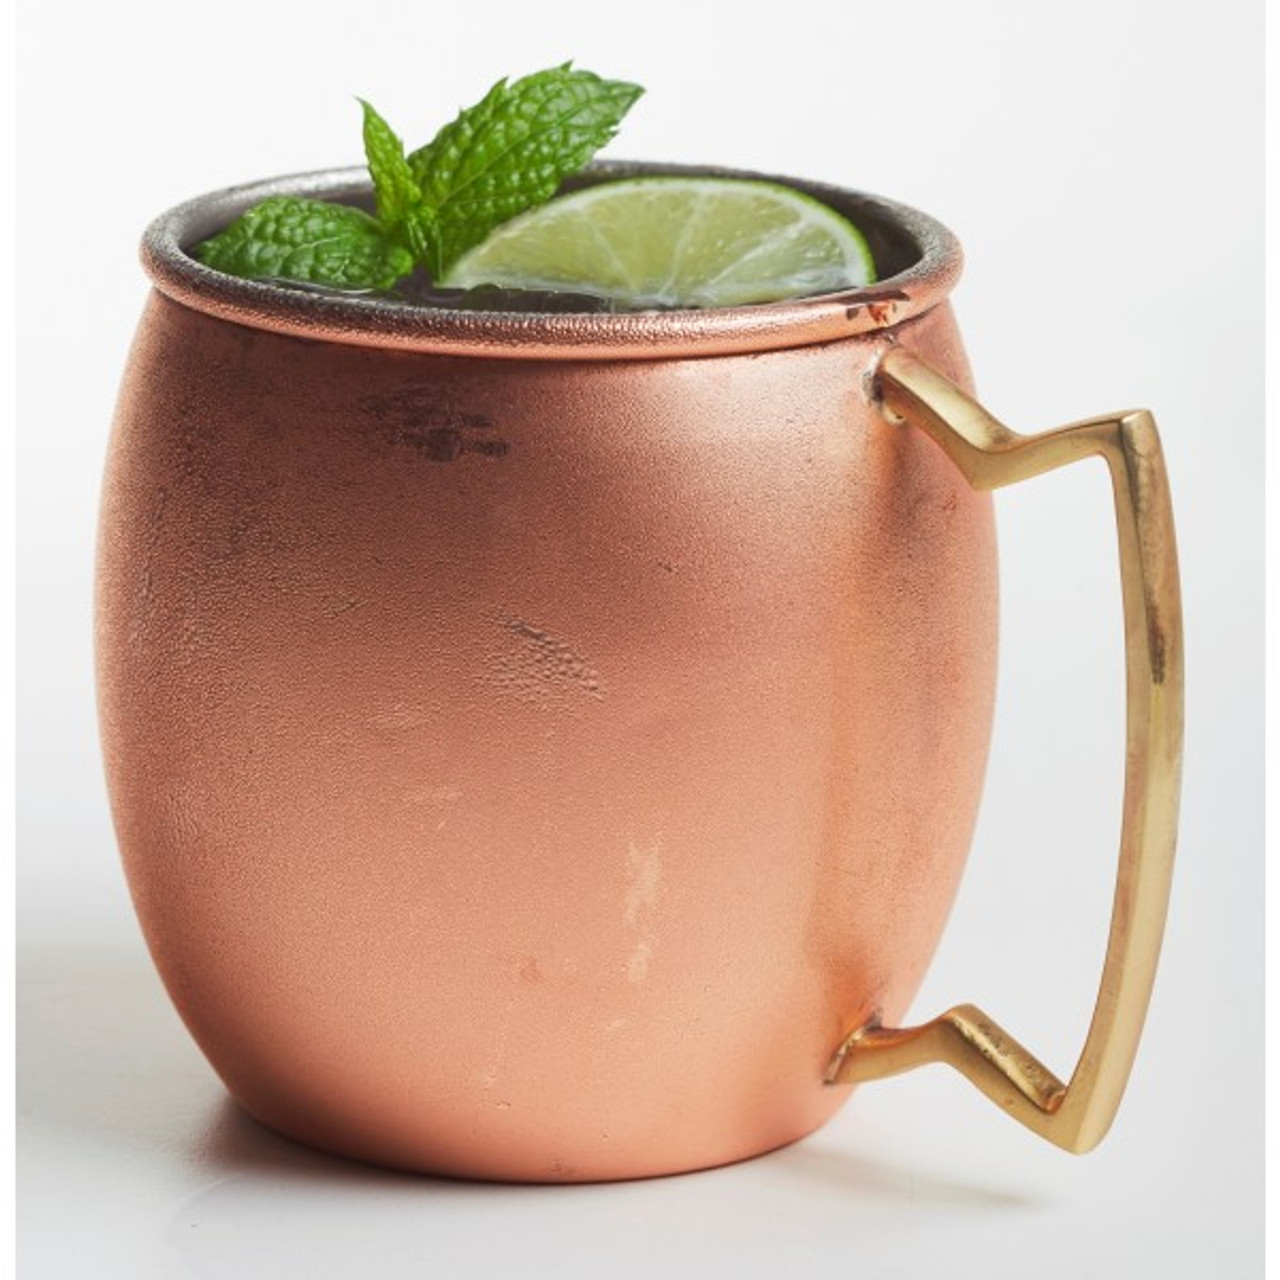 MOSCOW MULE MUG BELLY SHAPE - SMOOTH FINISH